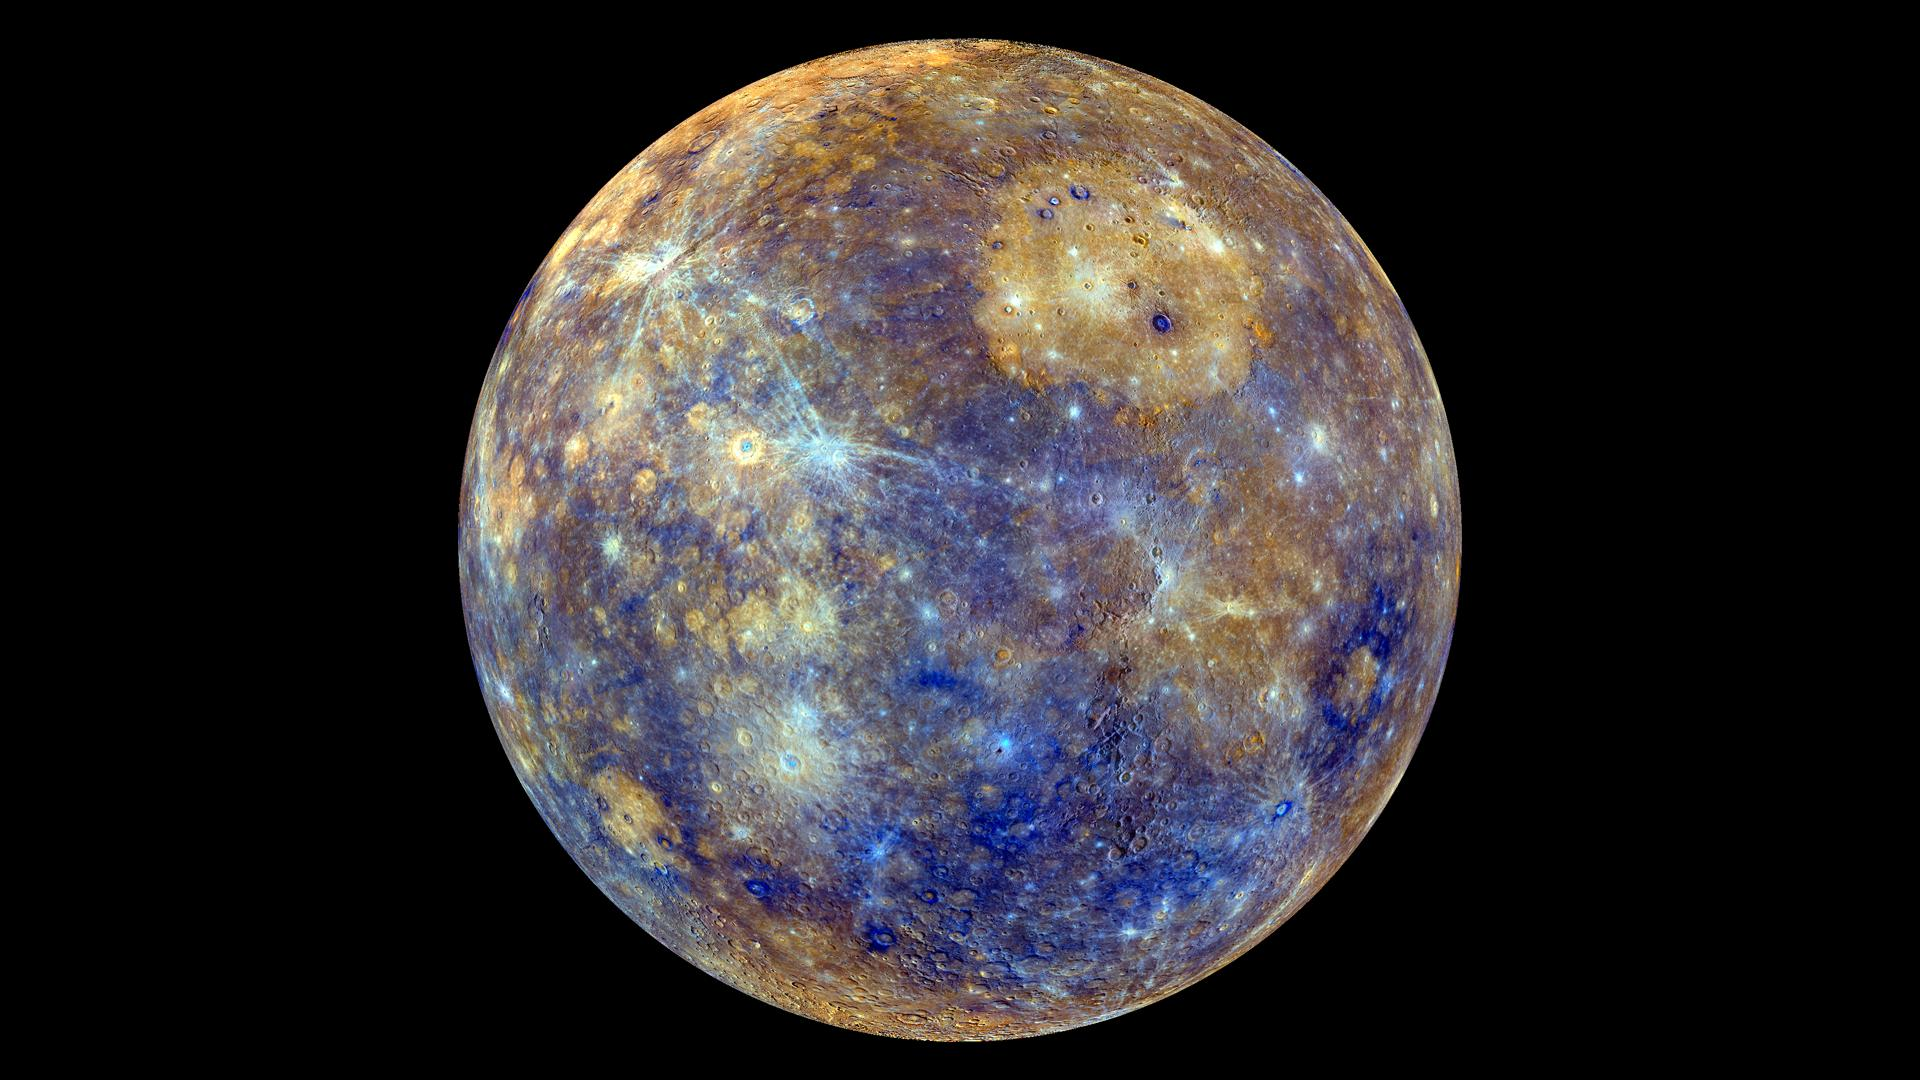 mercury pictures from nasa - photo #6